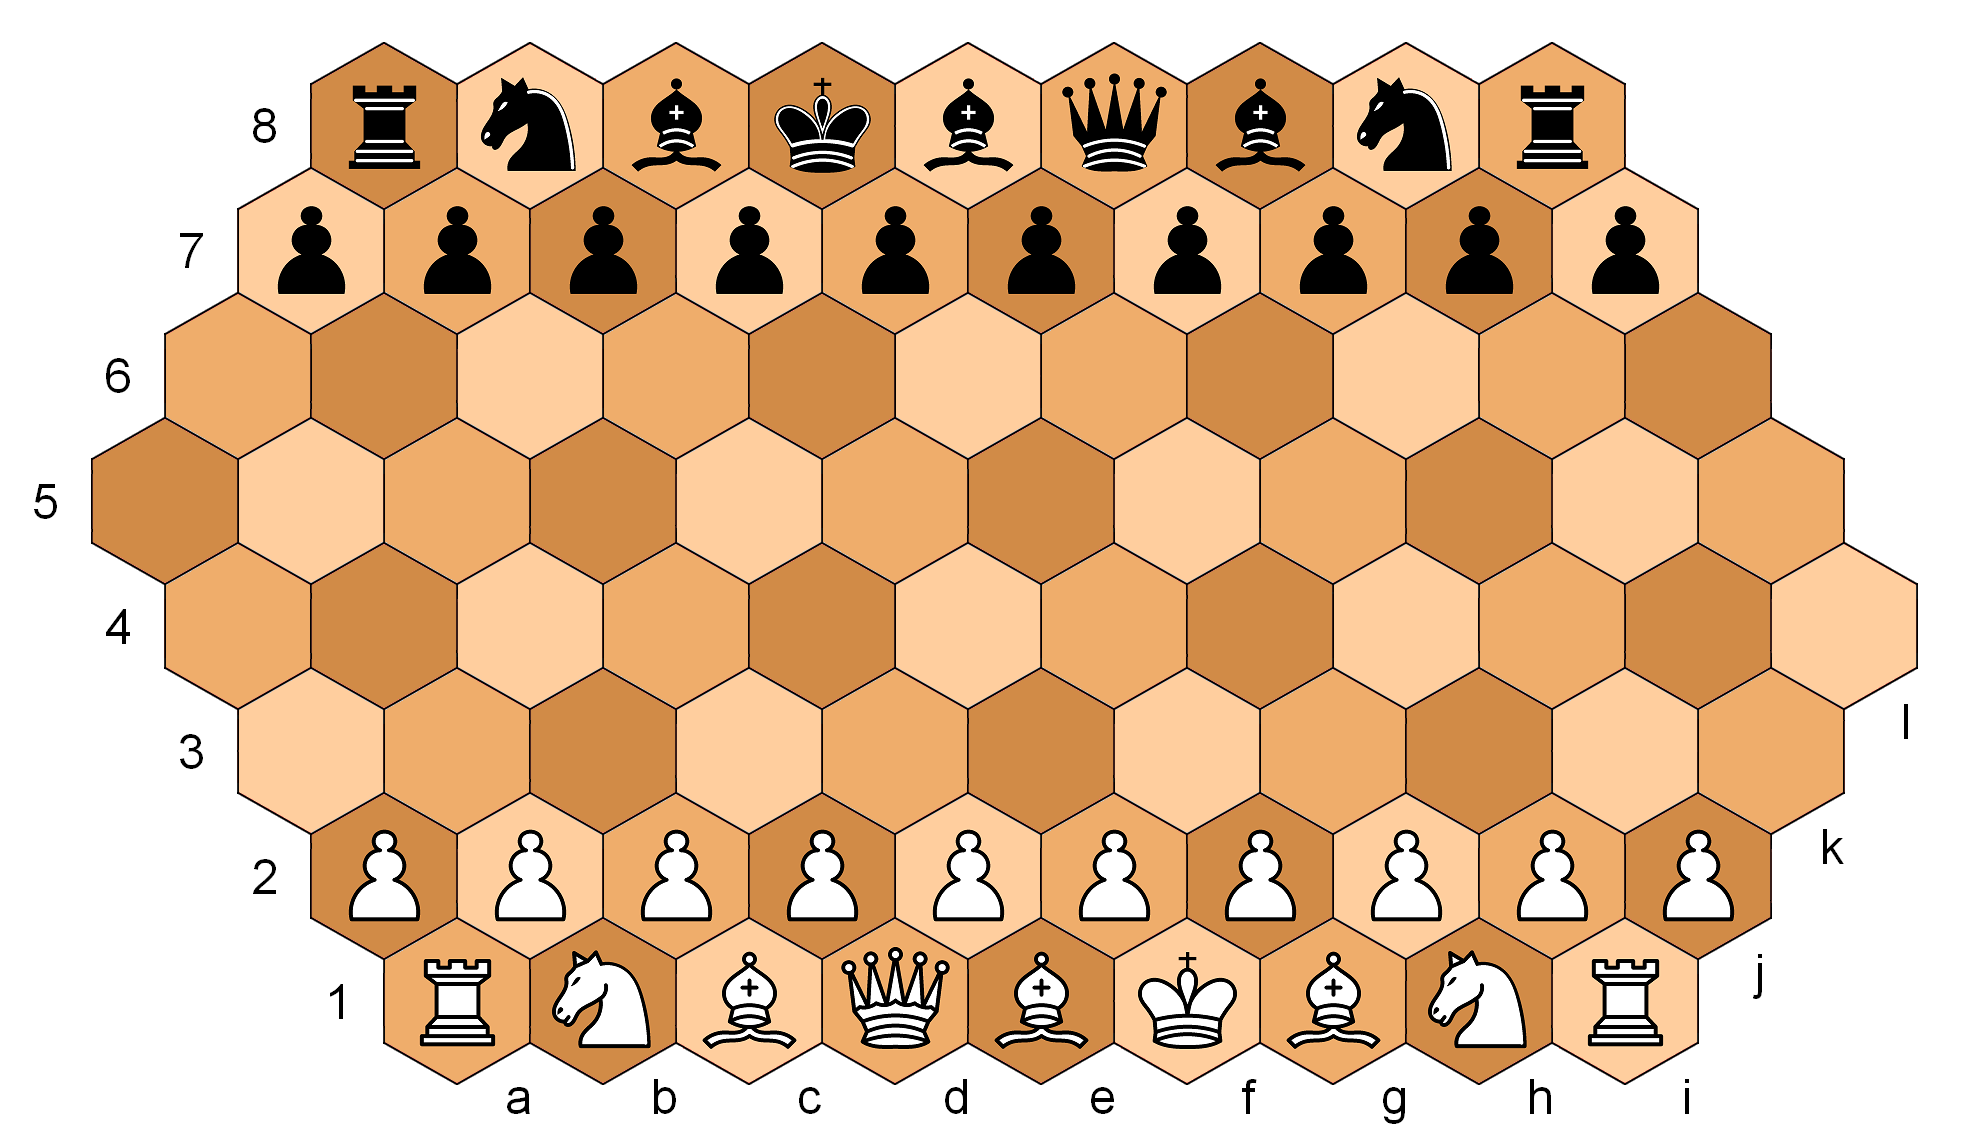 File:Brusky's hexagonal chess, init config.PNG - Wikipedia